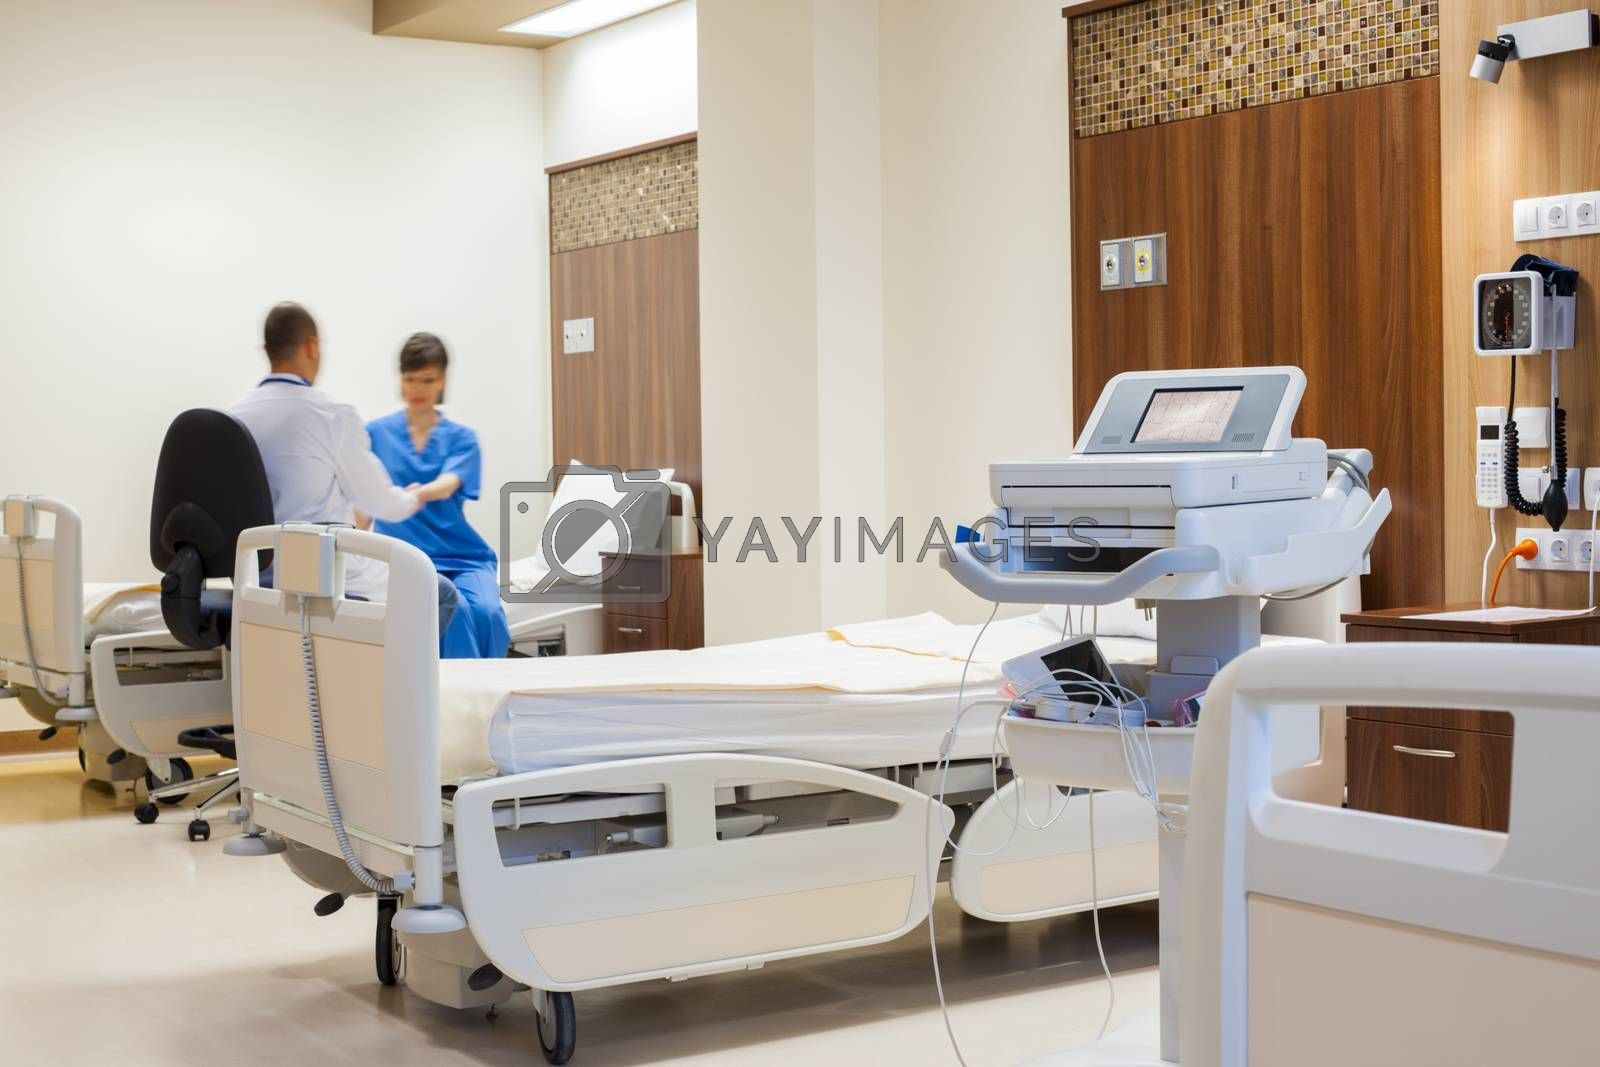 Blurred figure of a patient being helped by a doctor to rise from the bed in a spacy modern hospital room. ECG machine on focus.